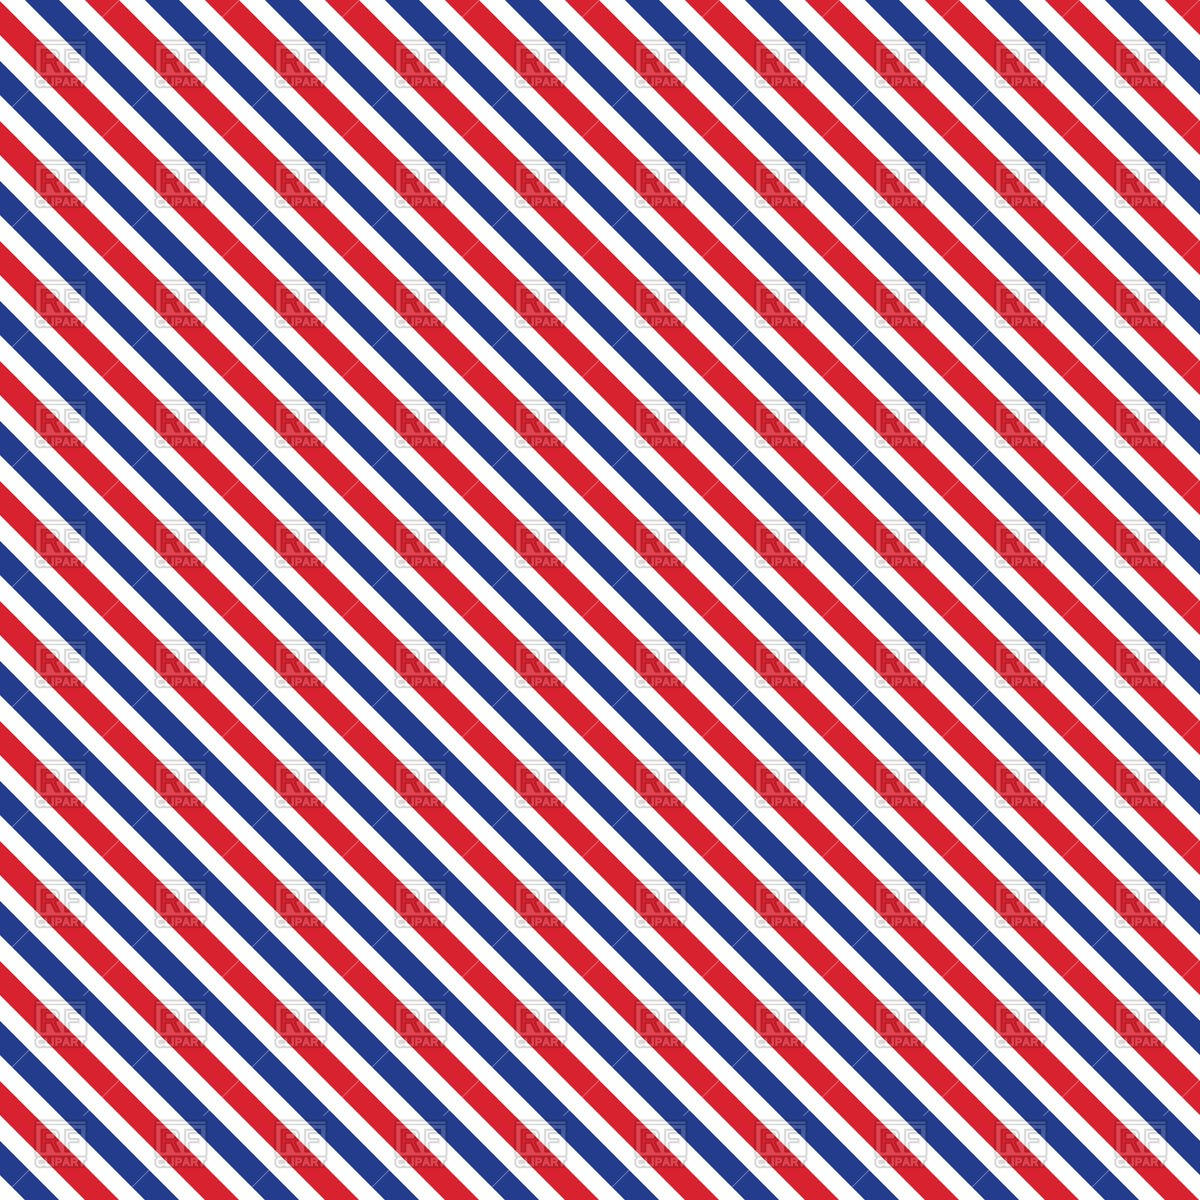 Red blue and white striped background Vector Image #126950.